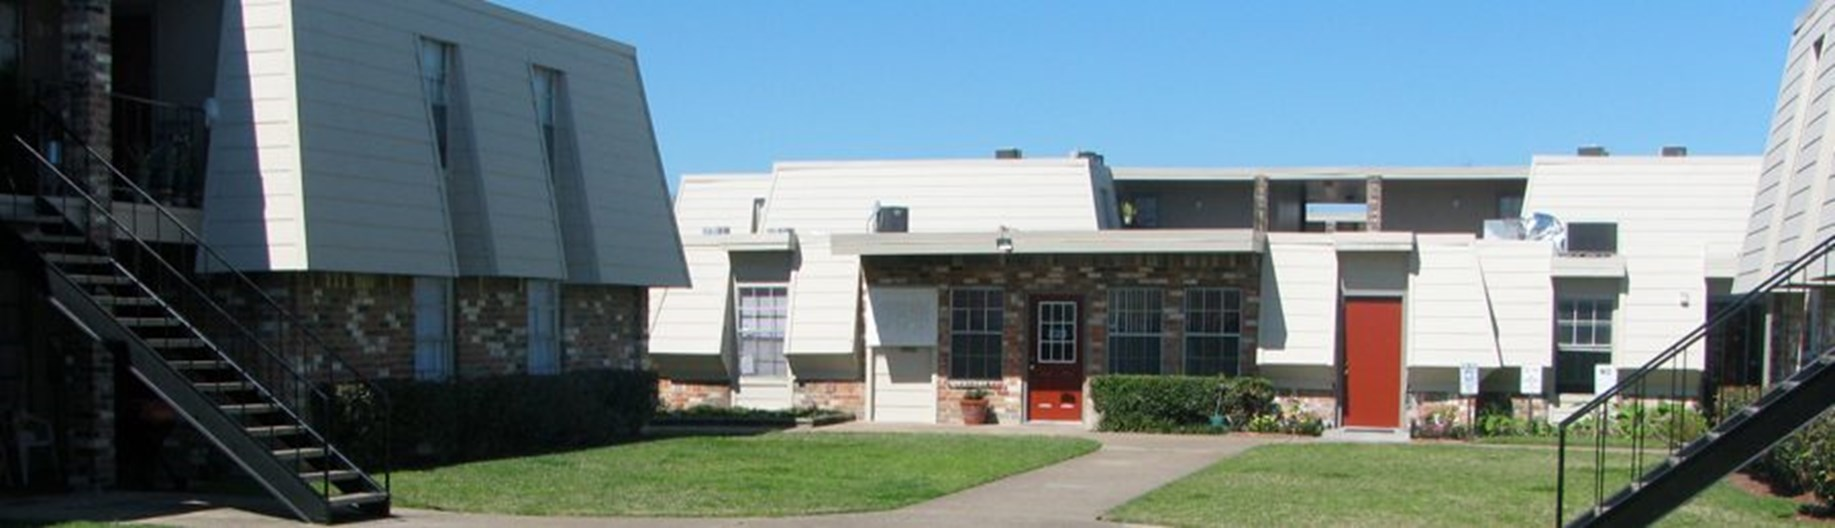 Tidwell Park Apartments